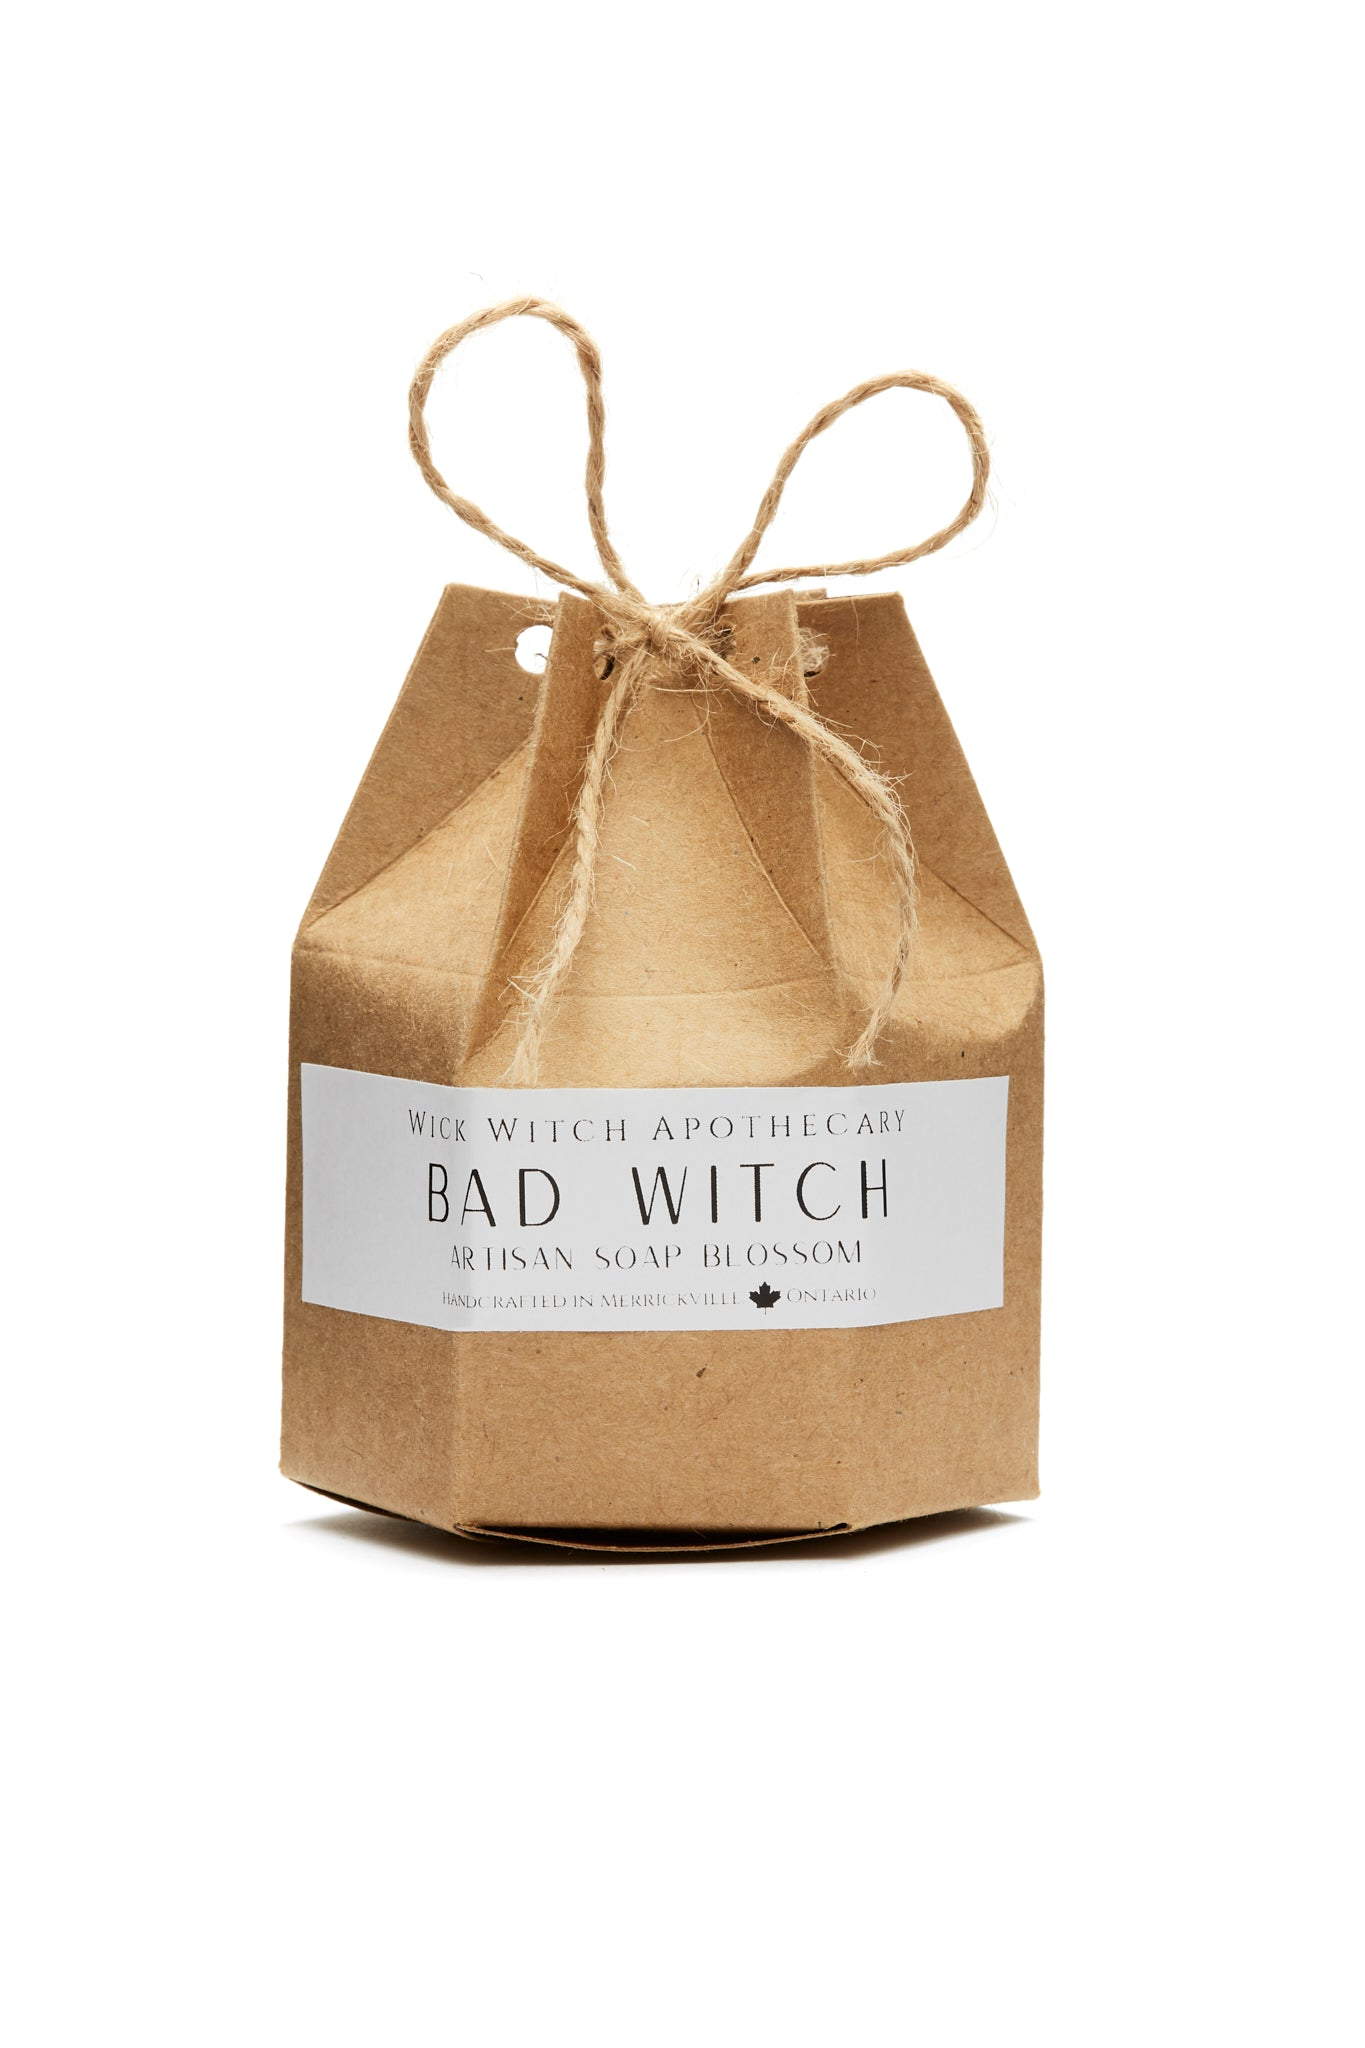 BAD WITCH ARTISAN SOAP BLOSSOM